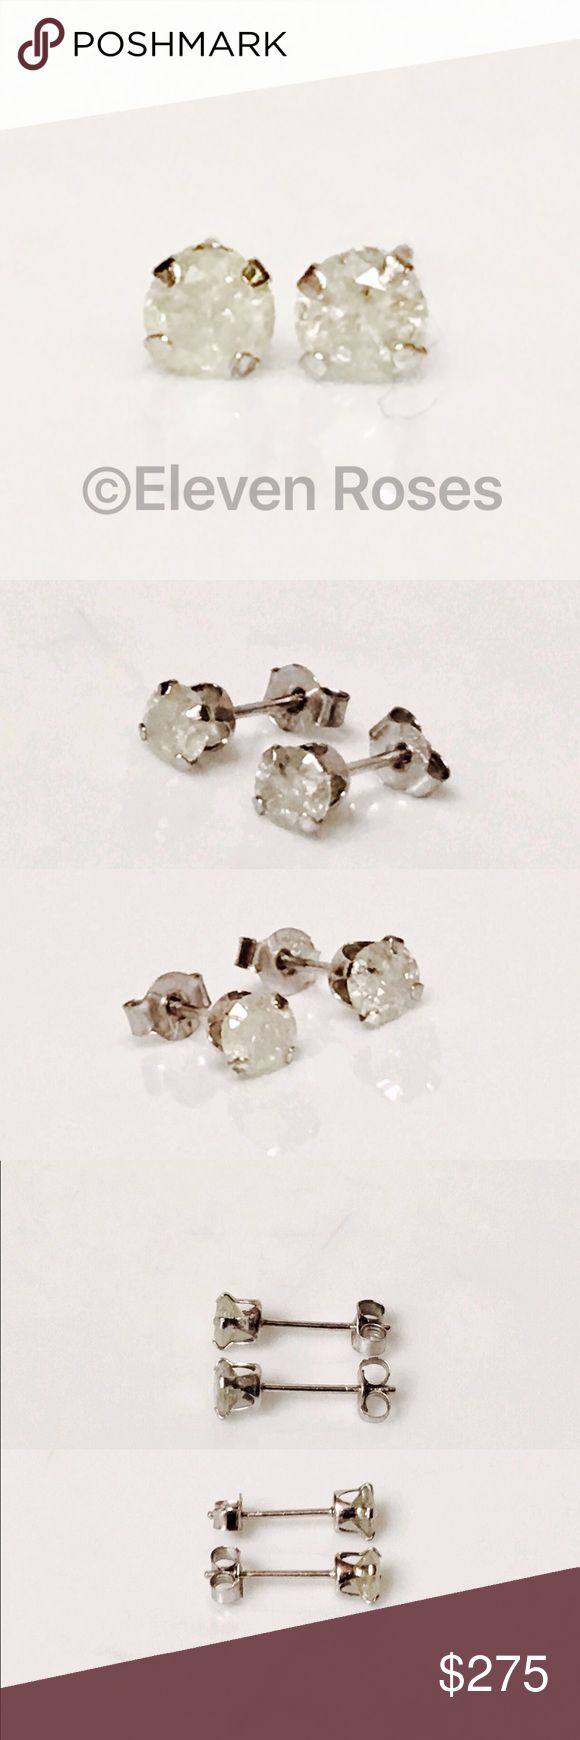 14k Gold 1/3 CTW Diamond Stud Earrings 14k Gold 1/3 CTW Diamond Stud Earrings - 585 14k White Gold - Real Diamonds Measure Approx 3.53 each (Approx 1/3 CTW) - Posts With Butterfly Backs (for pierced ears) -  Nice Size Starter Studs (Not Superior Quality (inclusions/color) - Preowned / Preloved  💕 May Show Slight Signs Of Having Been Worn.  📷  Listing Images Are Of Actual Item Being Offered Jewelry Earrings